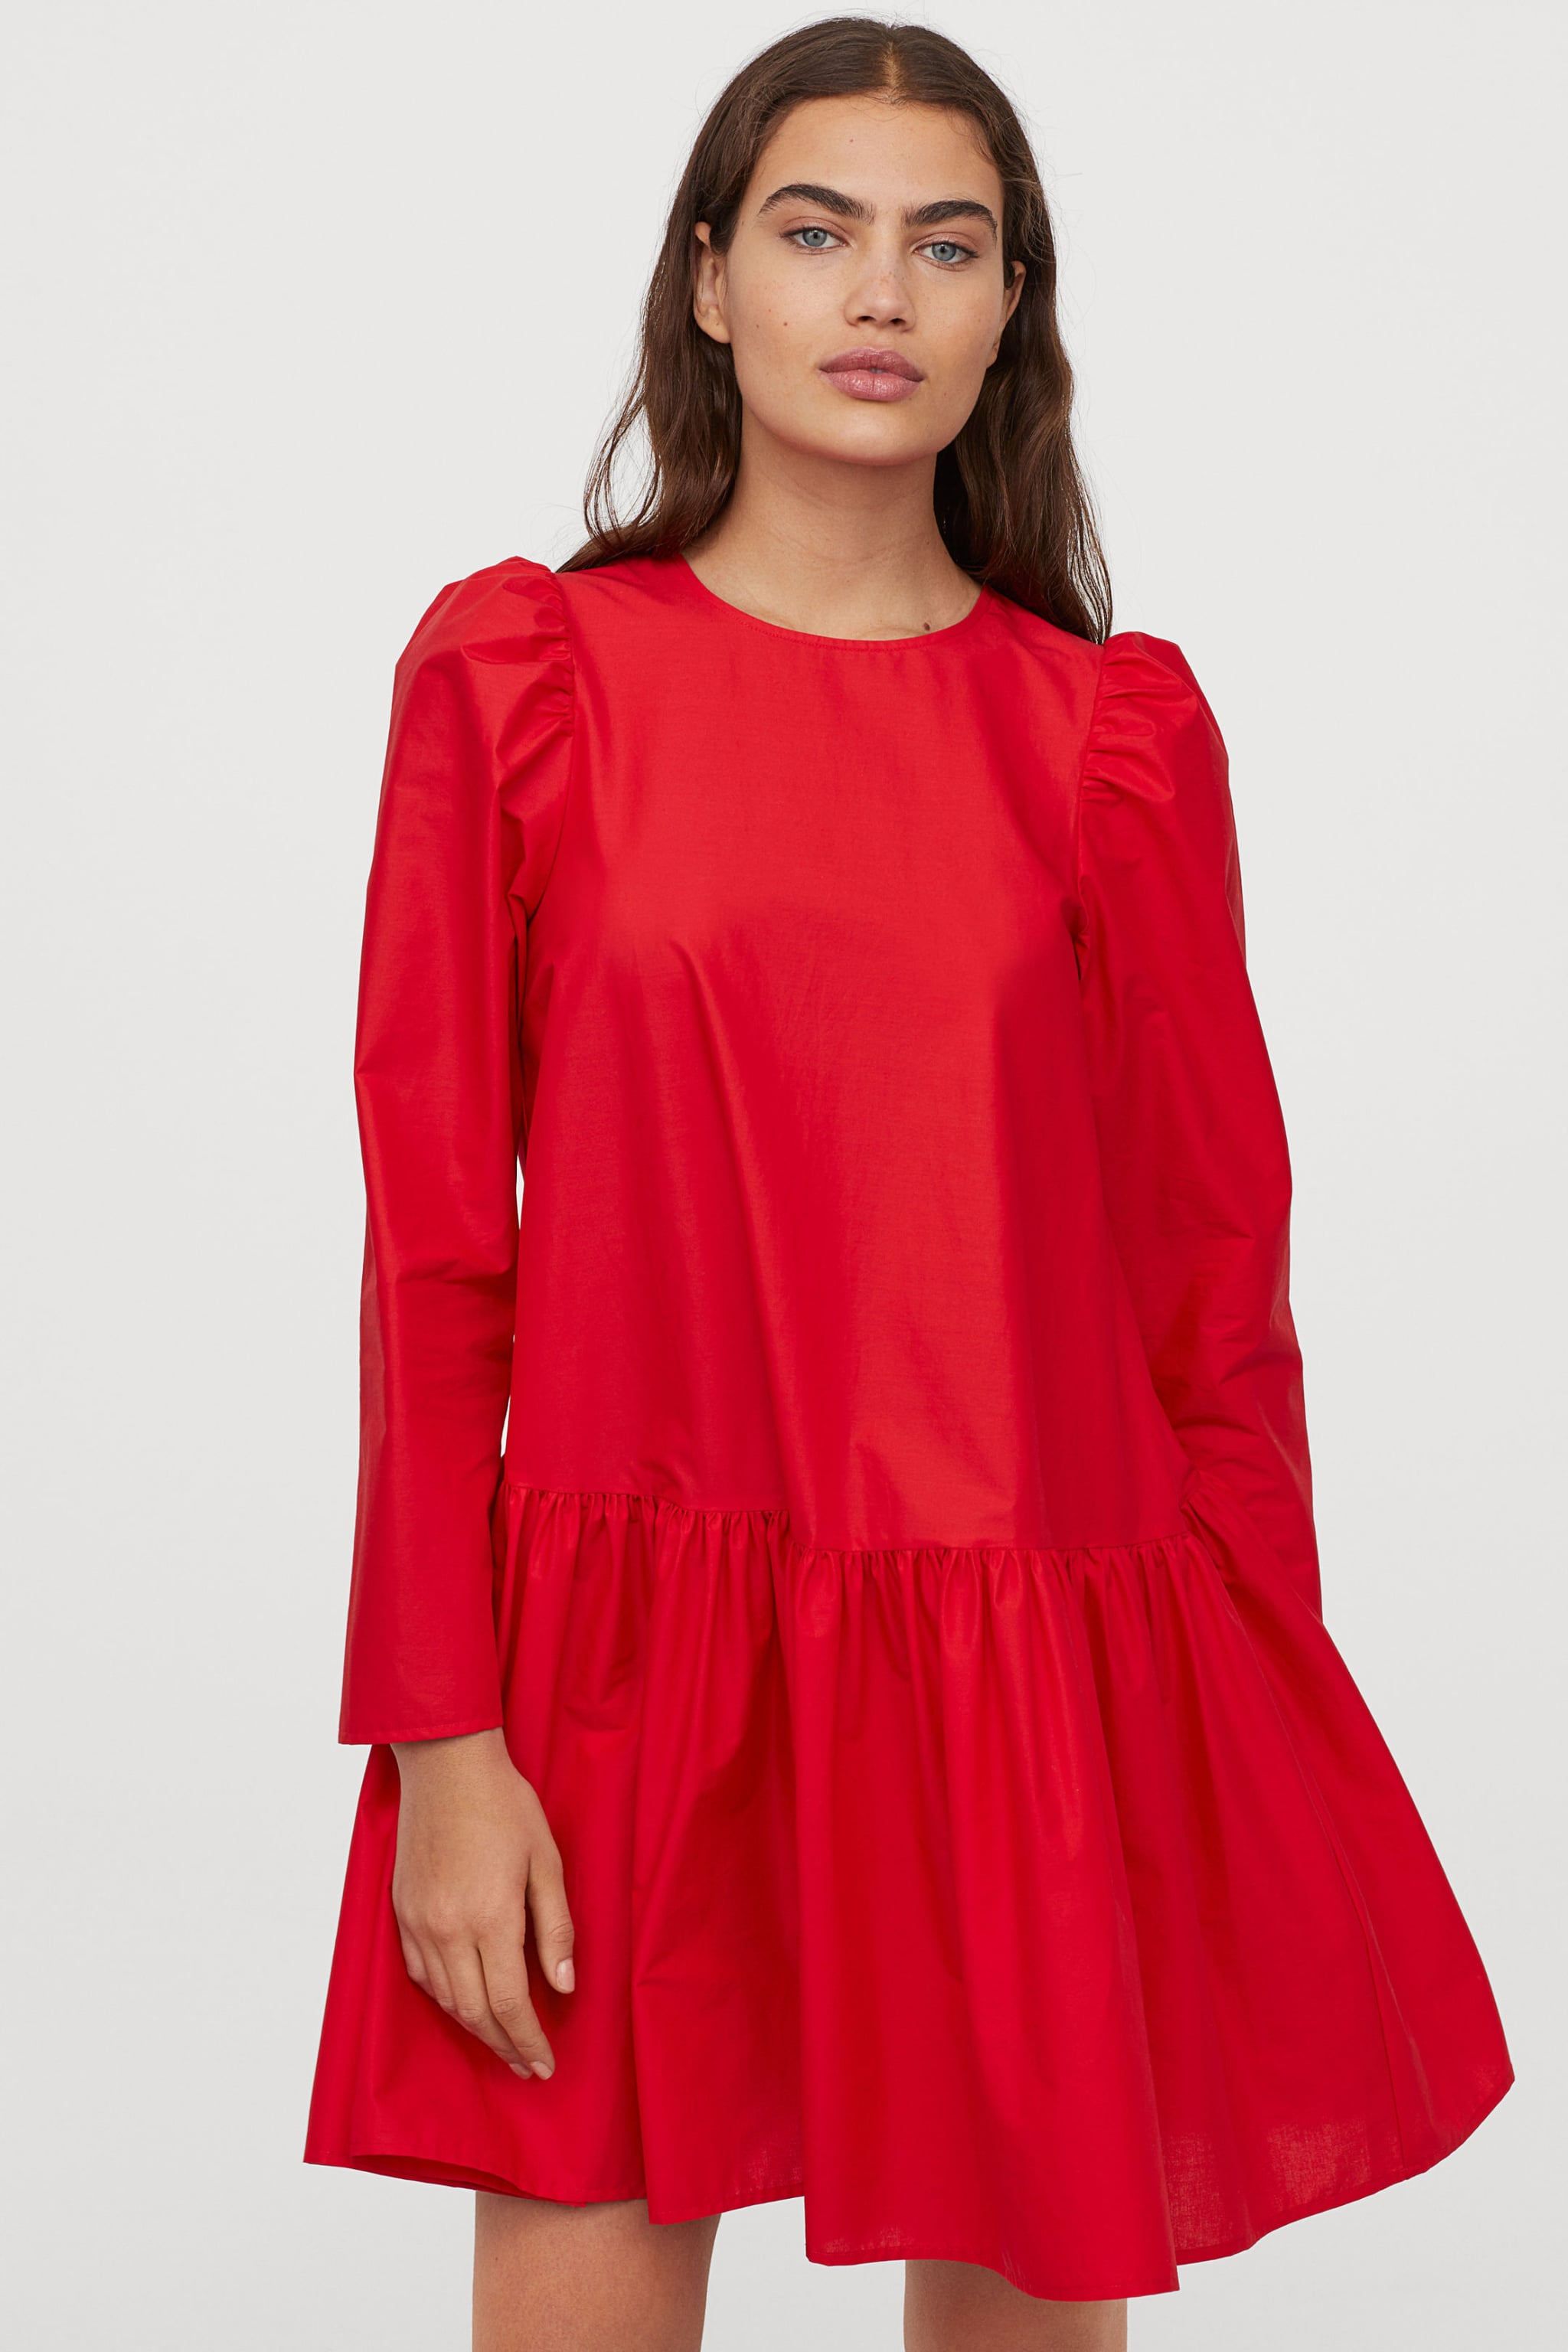 H&M Cotton Poplin Dress   The 20 Cutest Holiday Party Dresses ...